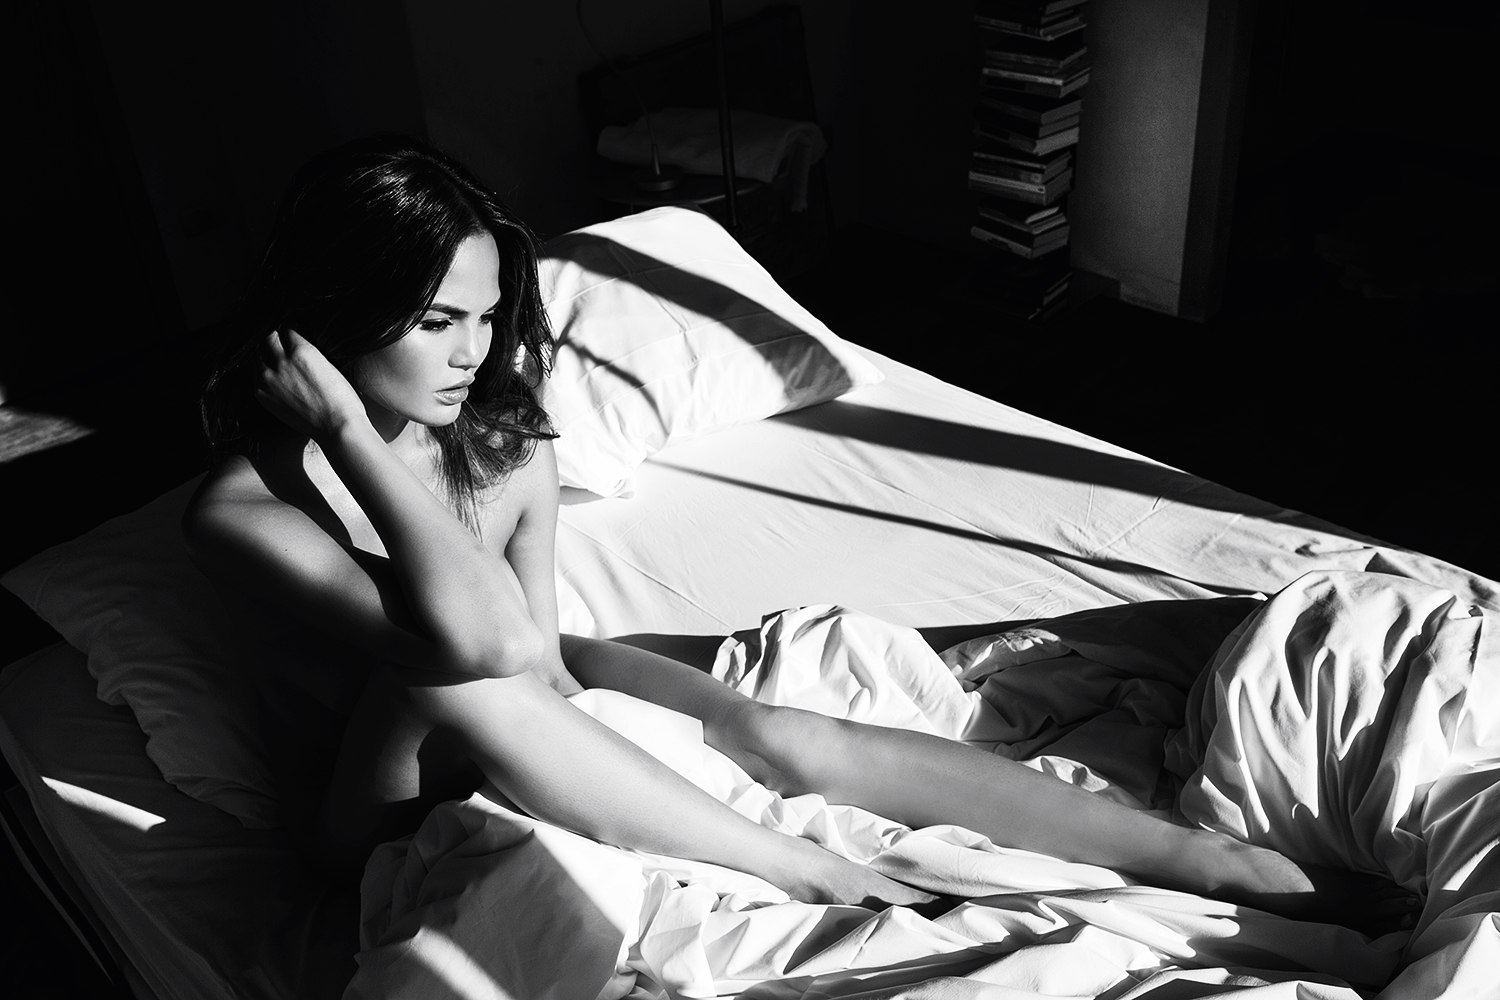 Chrissy Teigen Nude Photo...